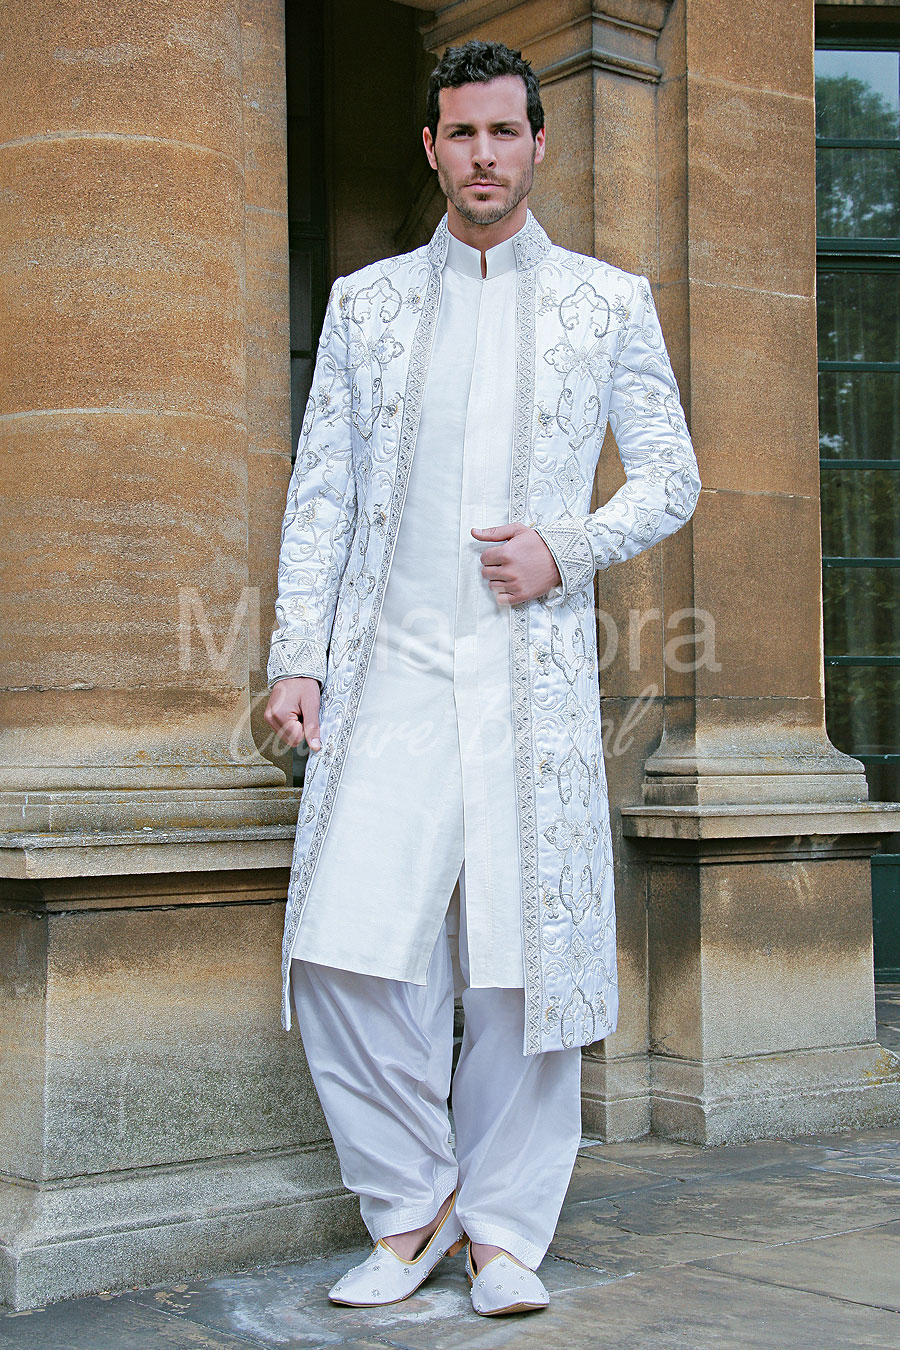 White wedding suits for grooms online asian grooms white for Wedding dress shirts for groom